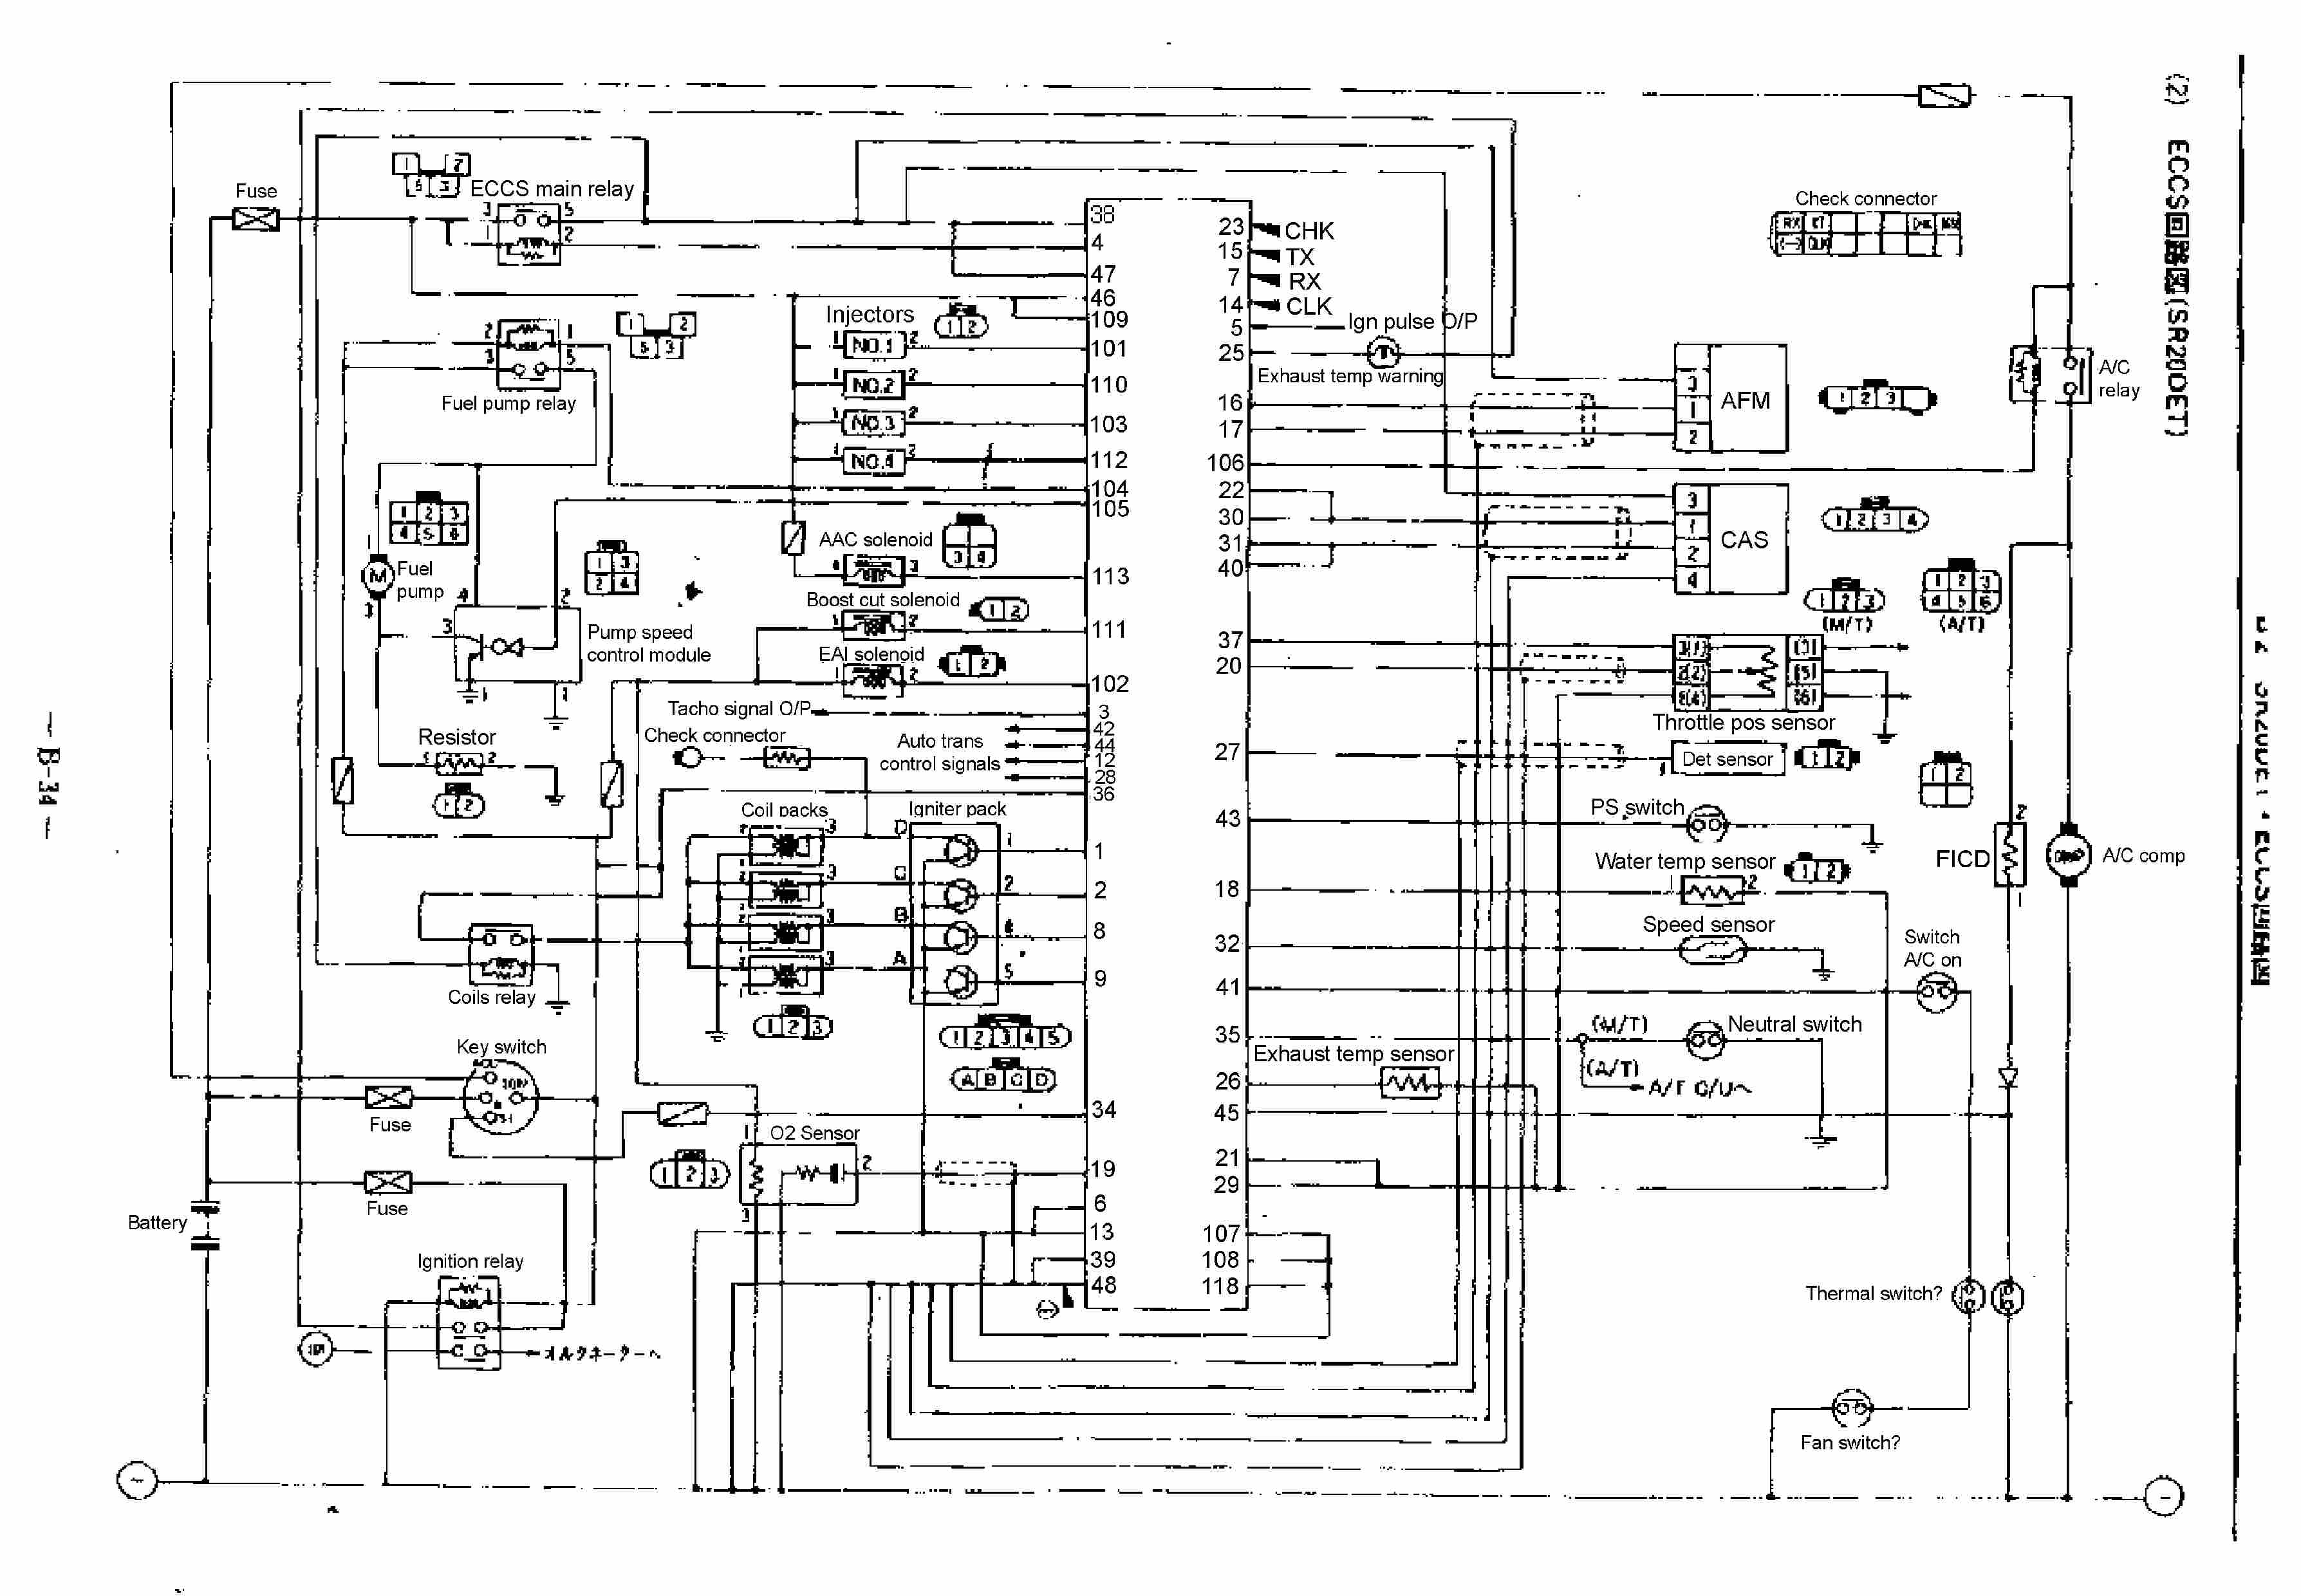 1991 d150 heater wiring diagram readingrat within bluebird wiring diagram 1995 nissan sunny wiring diagram pdf nissan wiring diagrams instruction nissan x trail t30 wiring diagram at gsmx.co